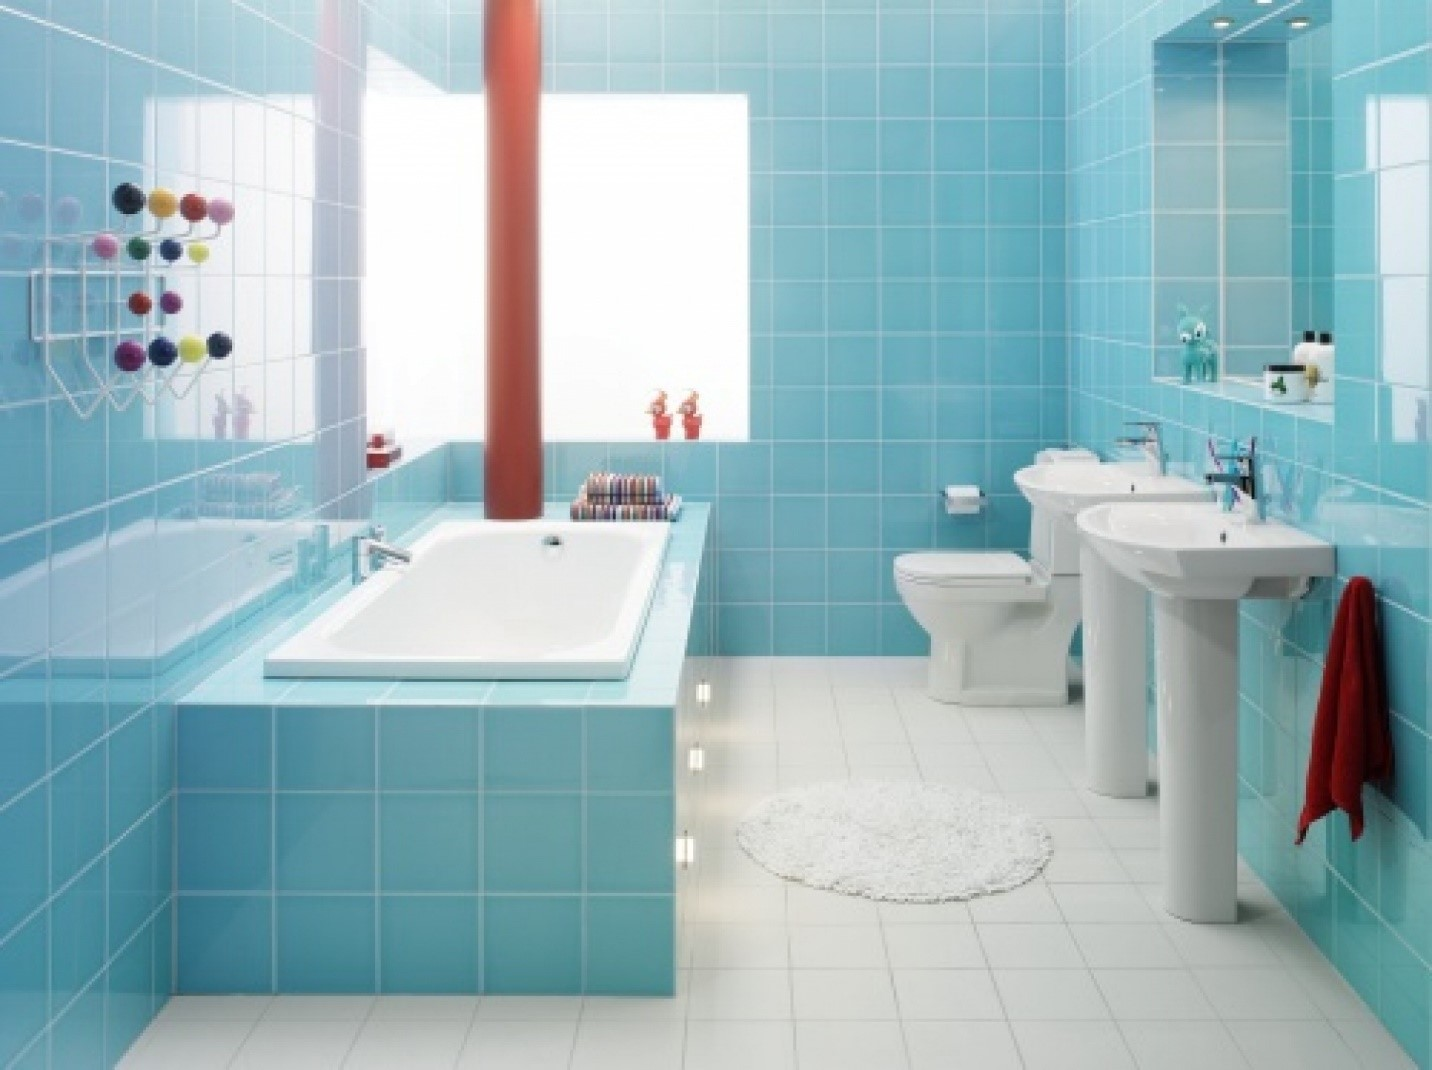 Cleaning Bathroom Tiles To Perfection For Festive Season - How long does it take to tile a bathroom